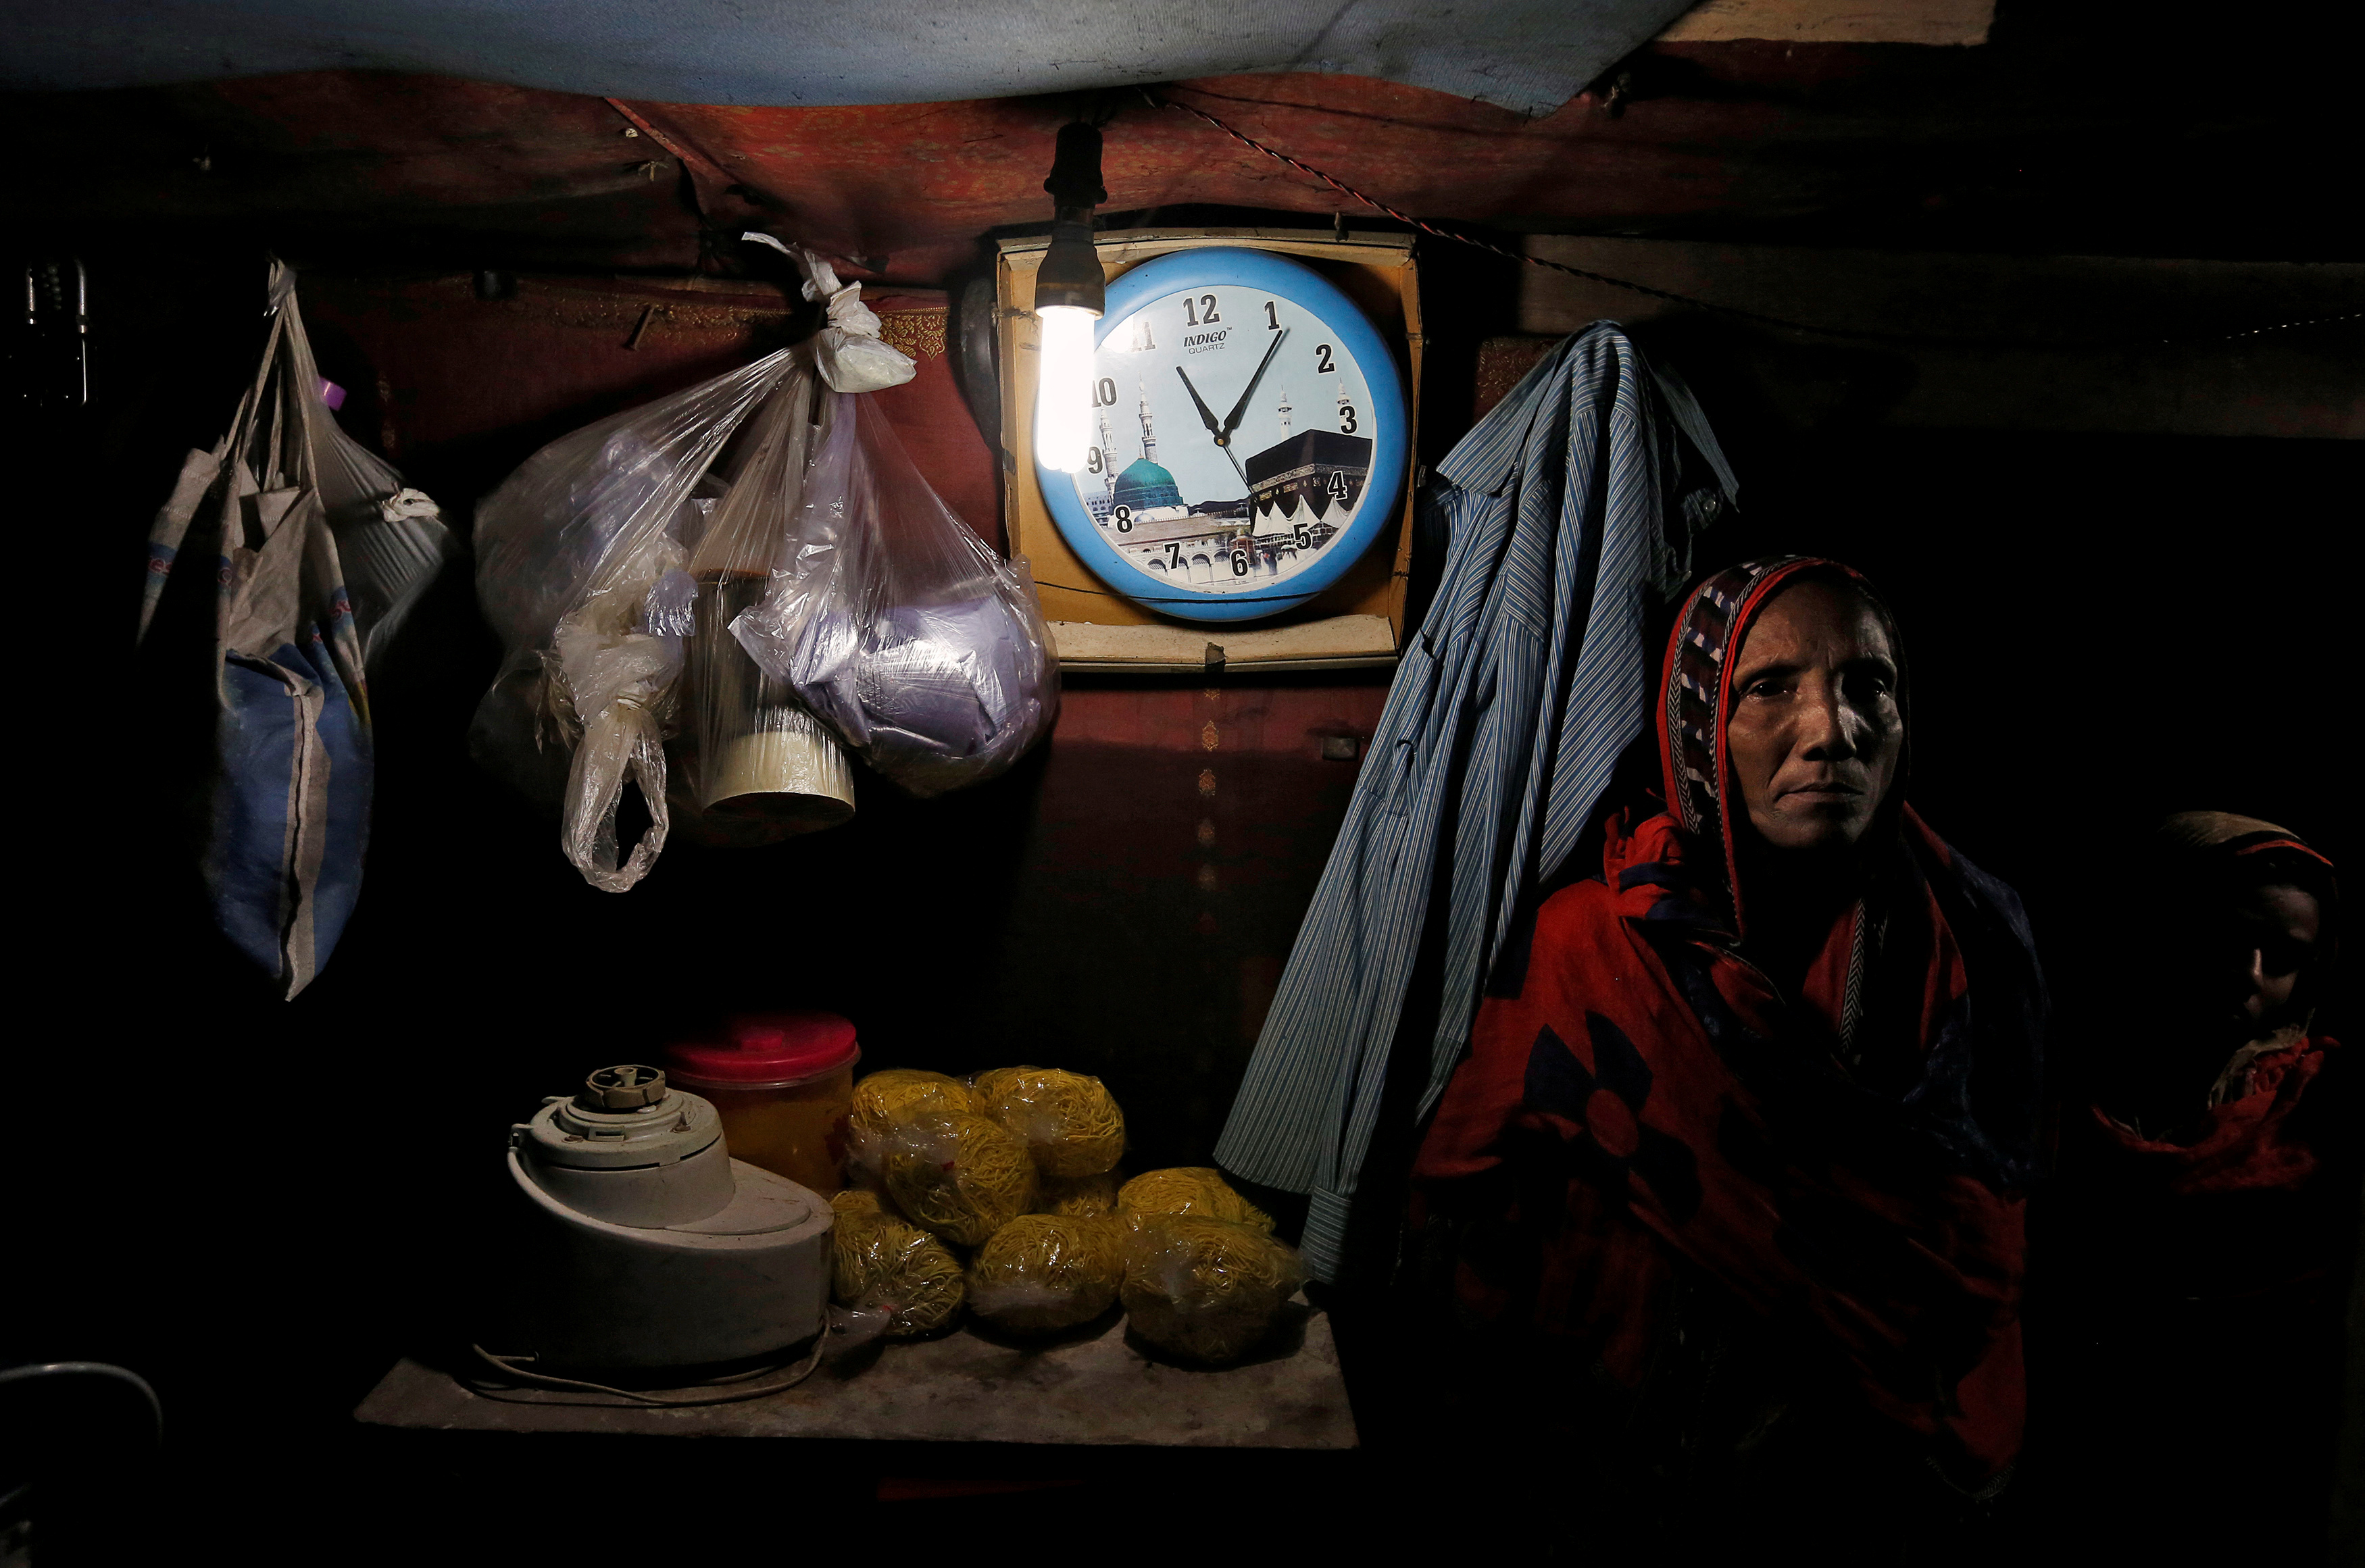 FILE - A family from the Rohingya community is pictured inside a shack in a camp in Delhi, India, Aug. 17, 2017.